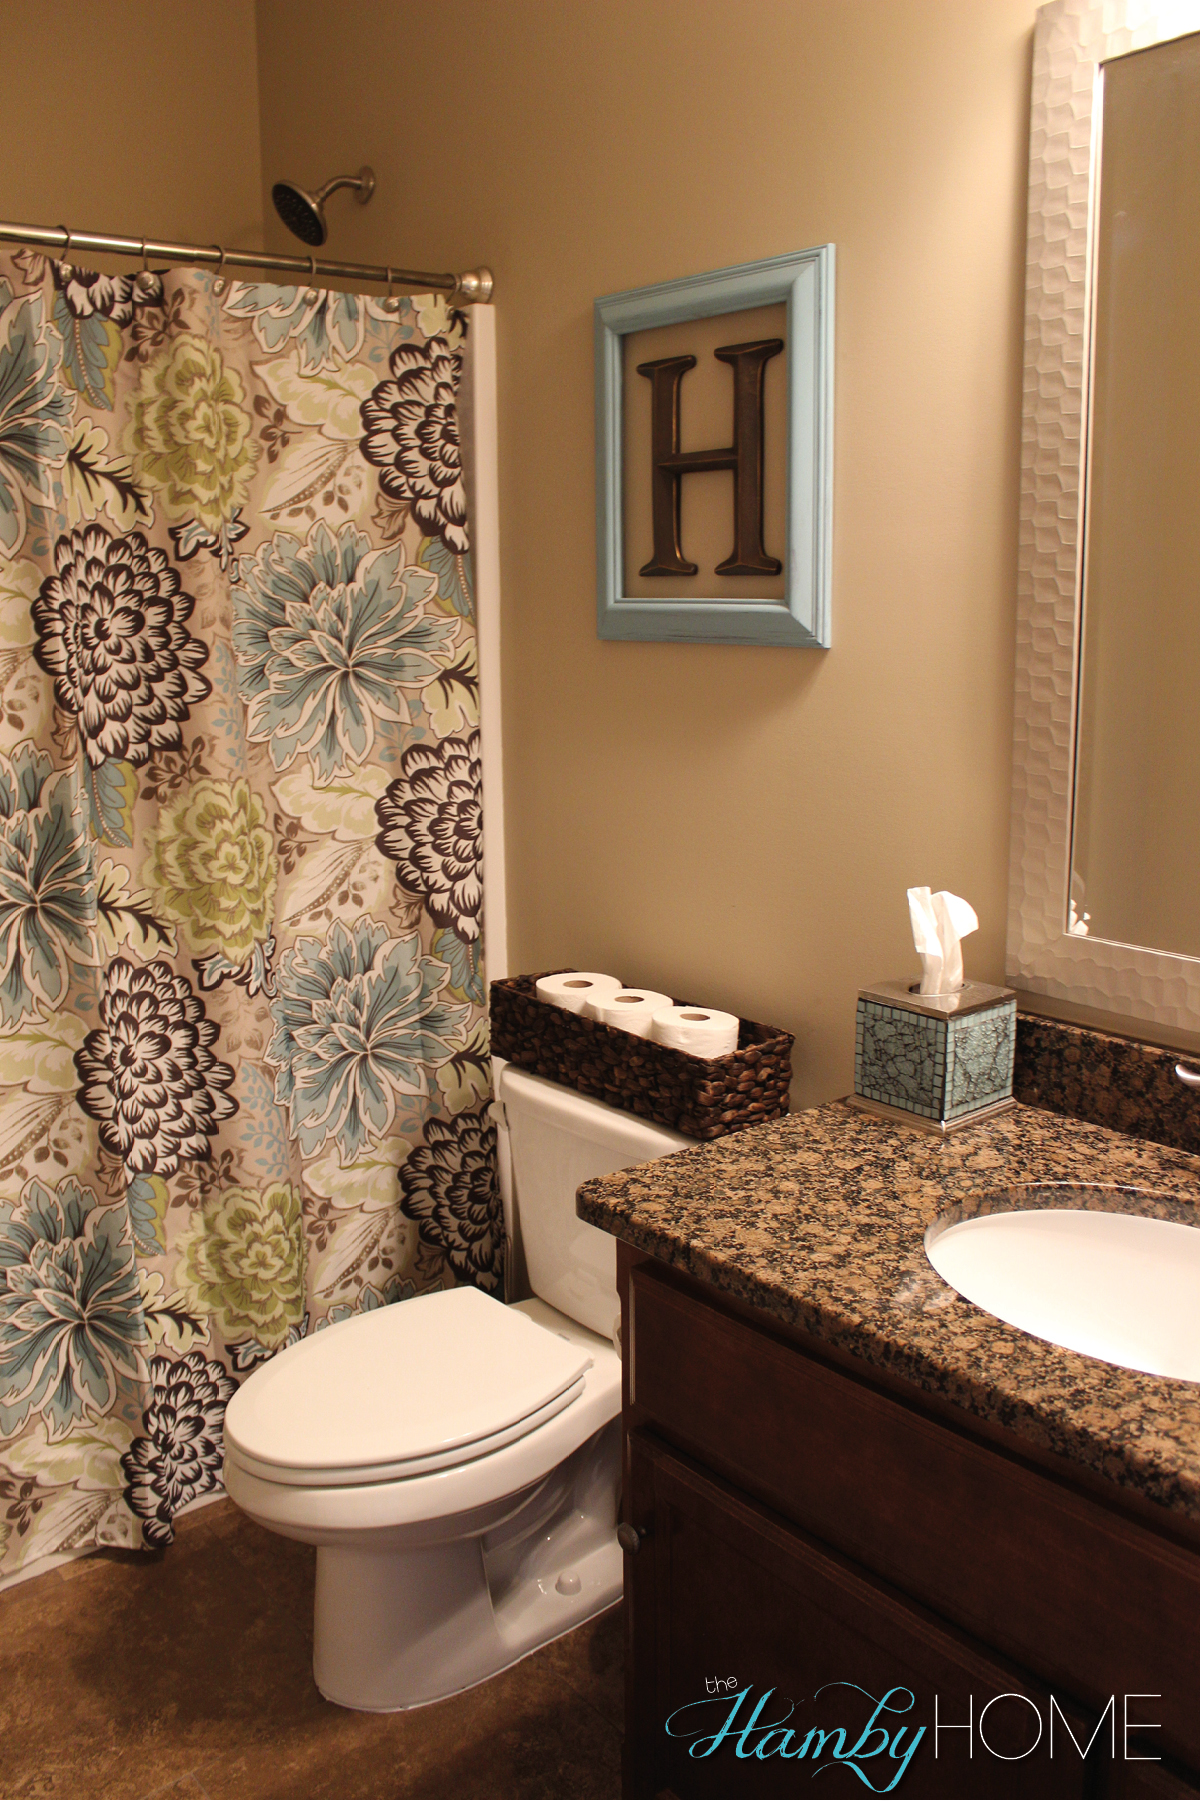 Tgif house tour guest bathroom the hamby home for Guest bathroom design